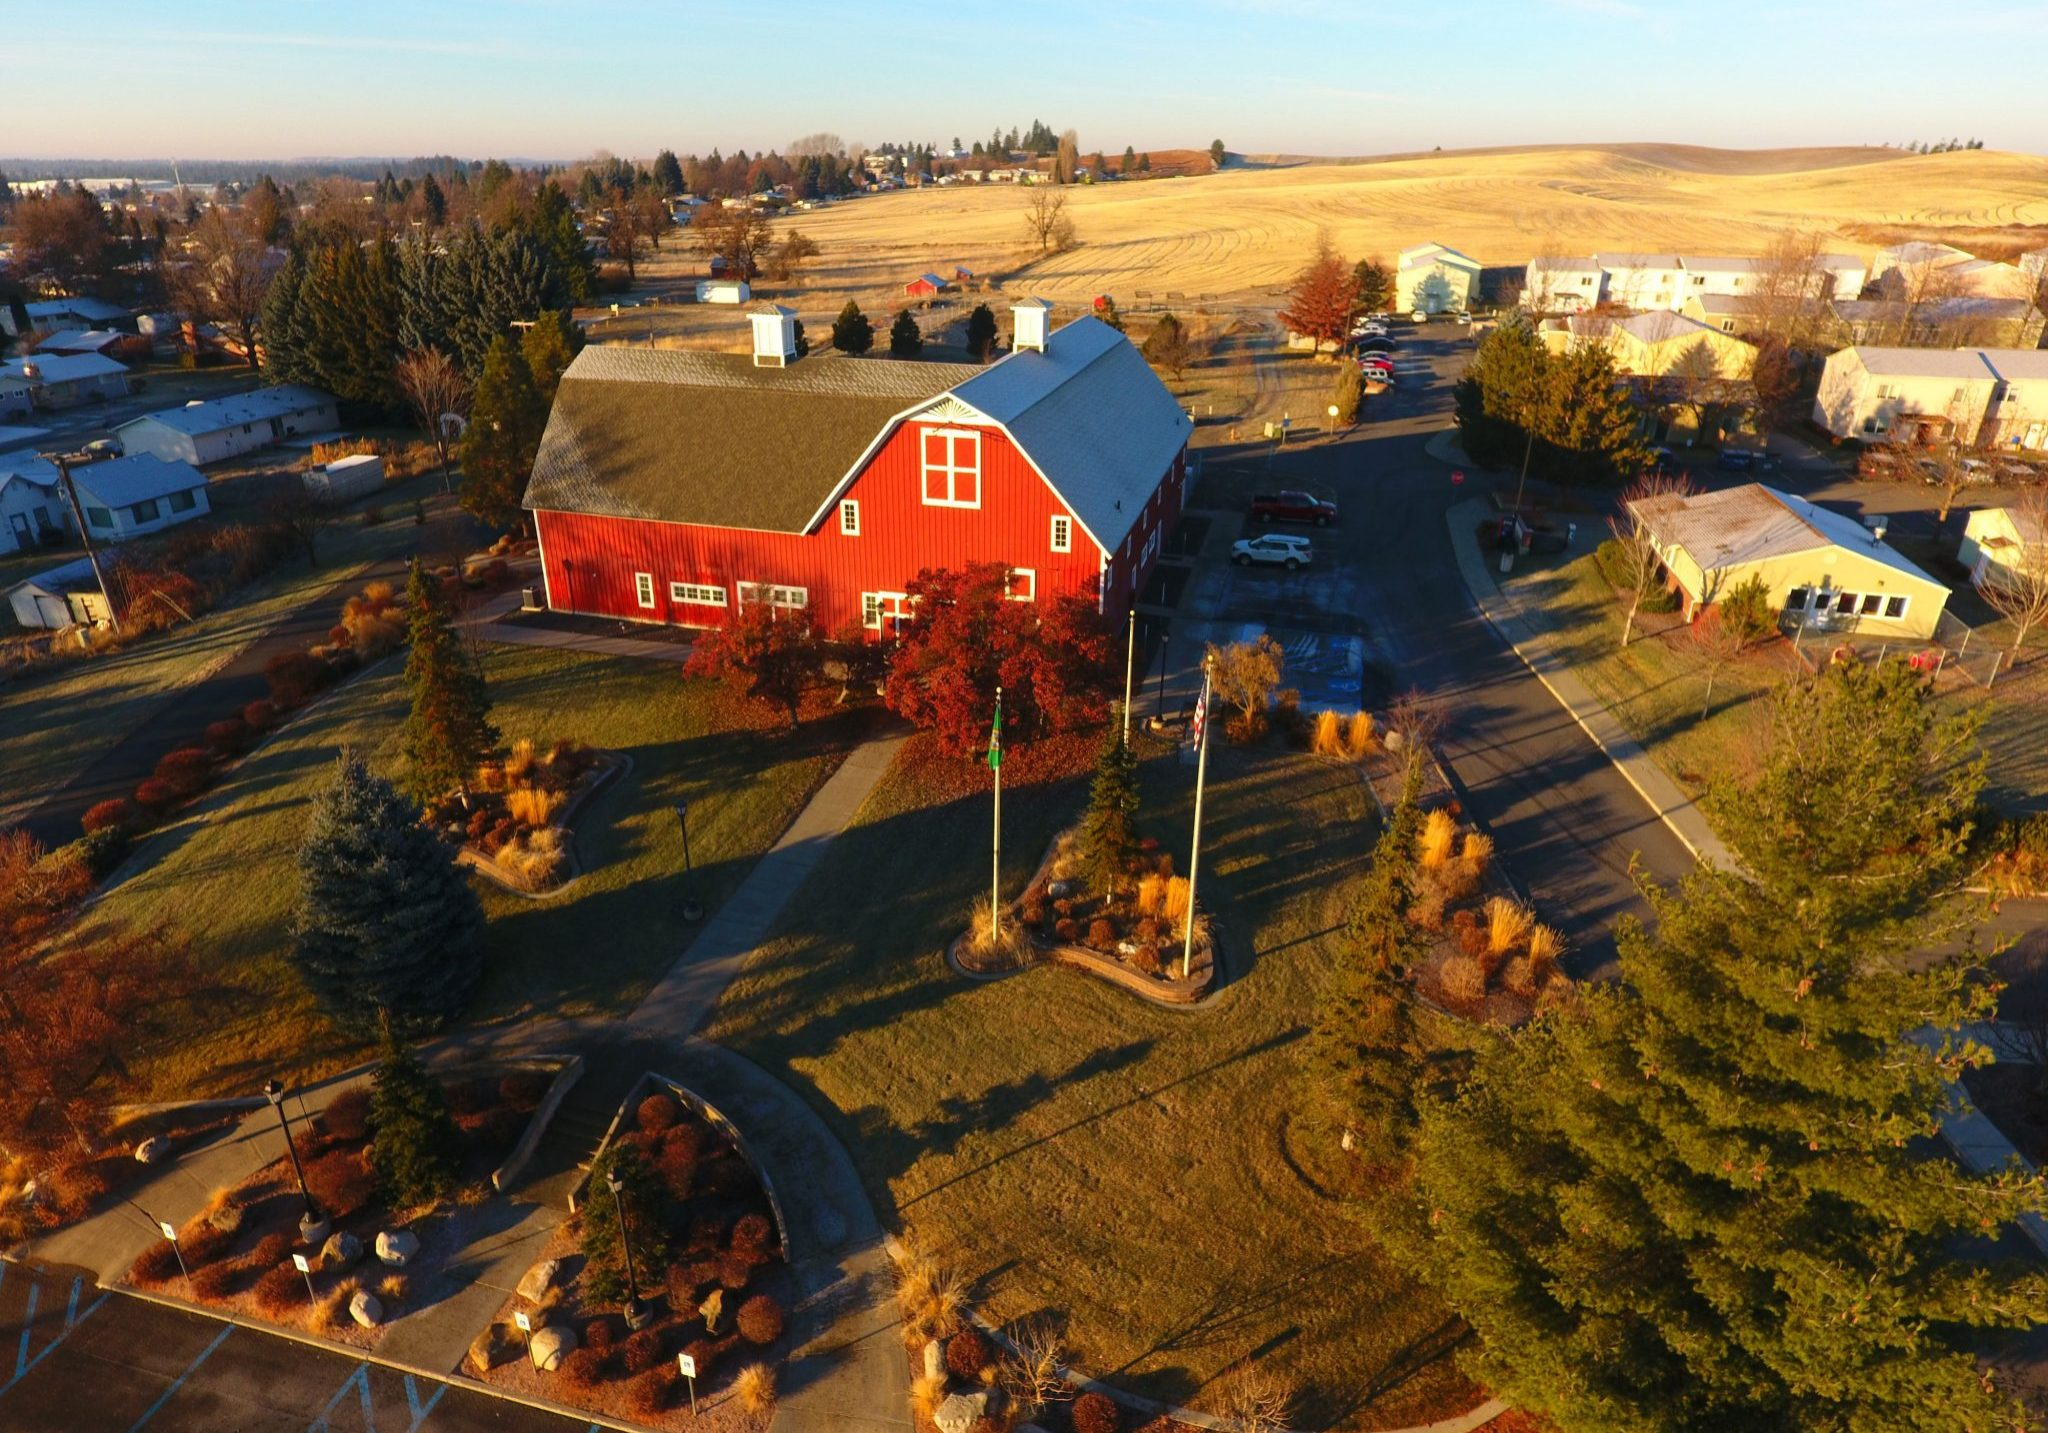 Red Barn photographed from a drone